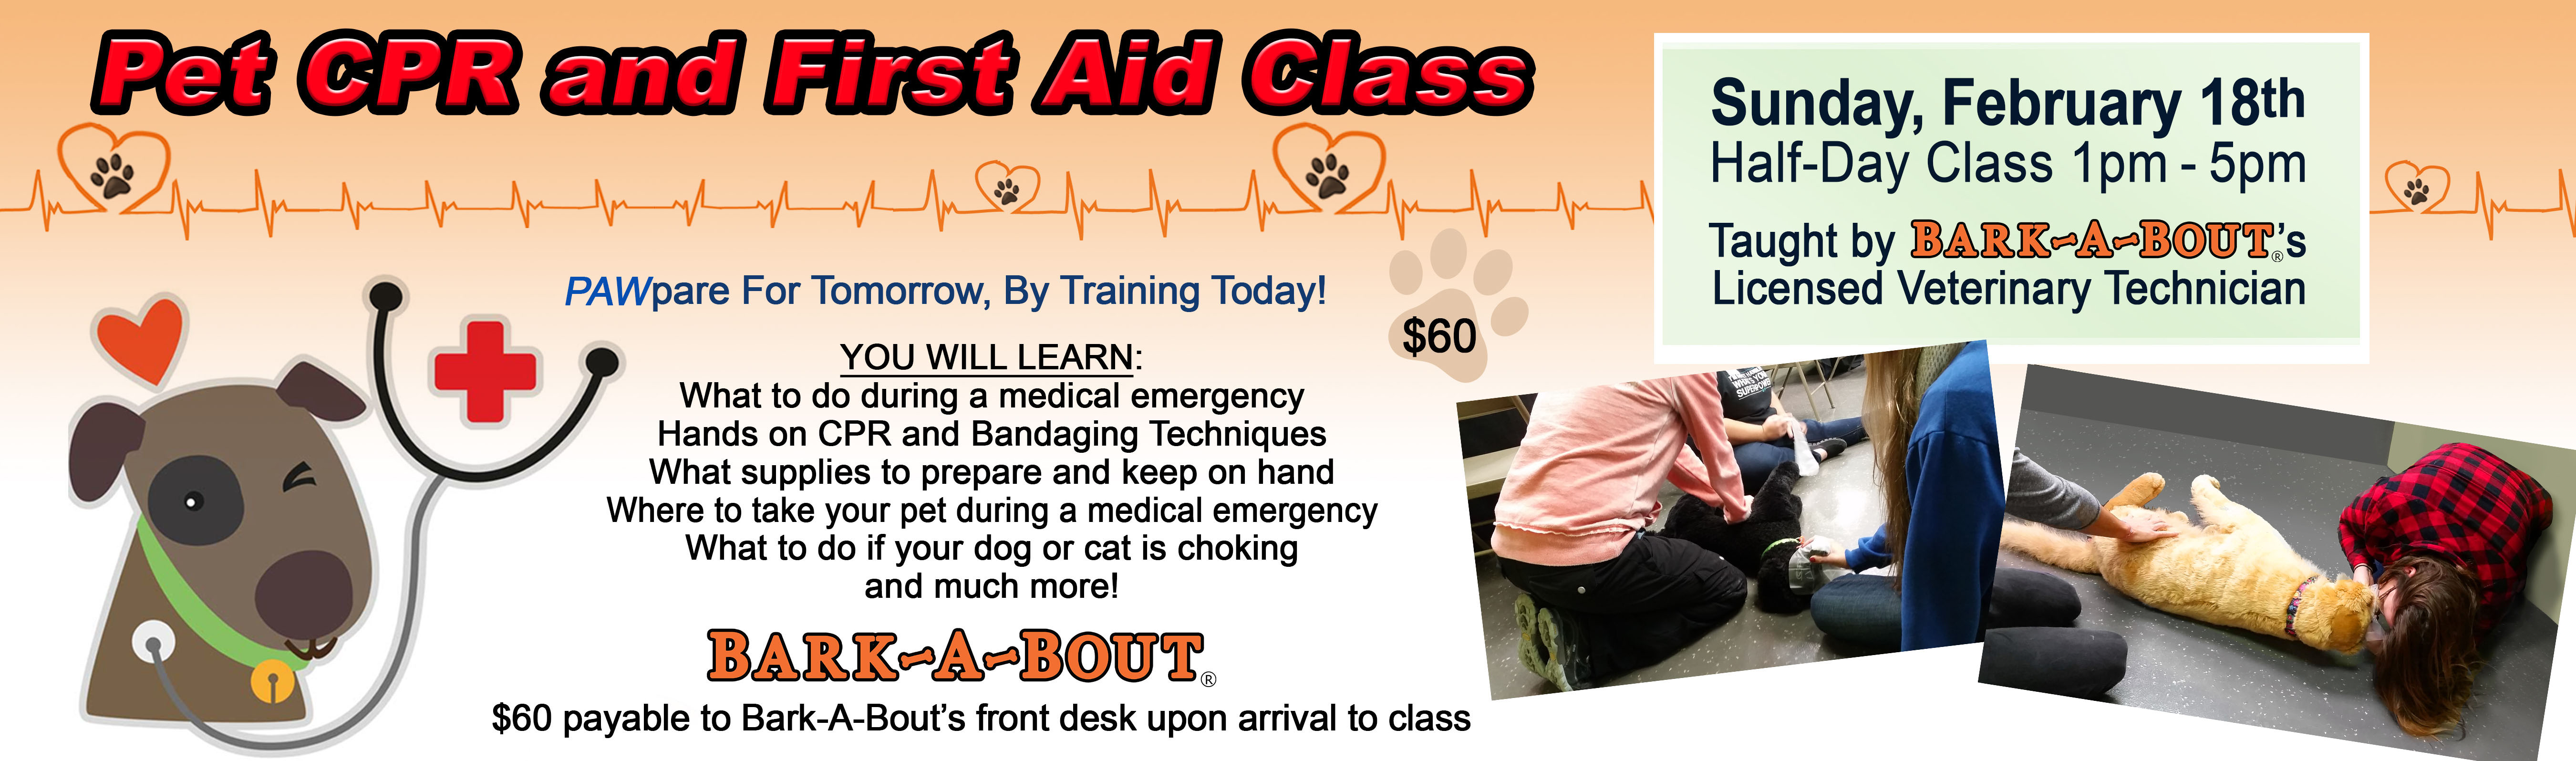 Bark A Bout Pet Cpr And First Aid